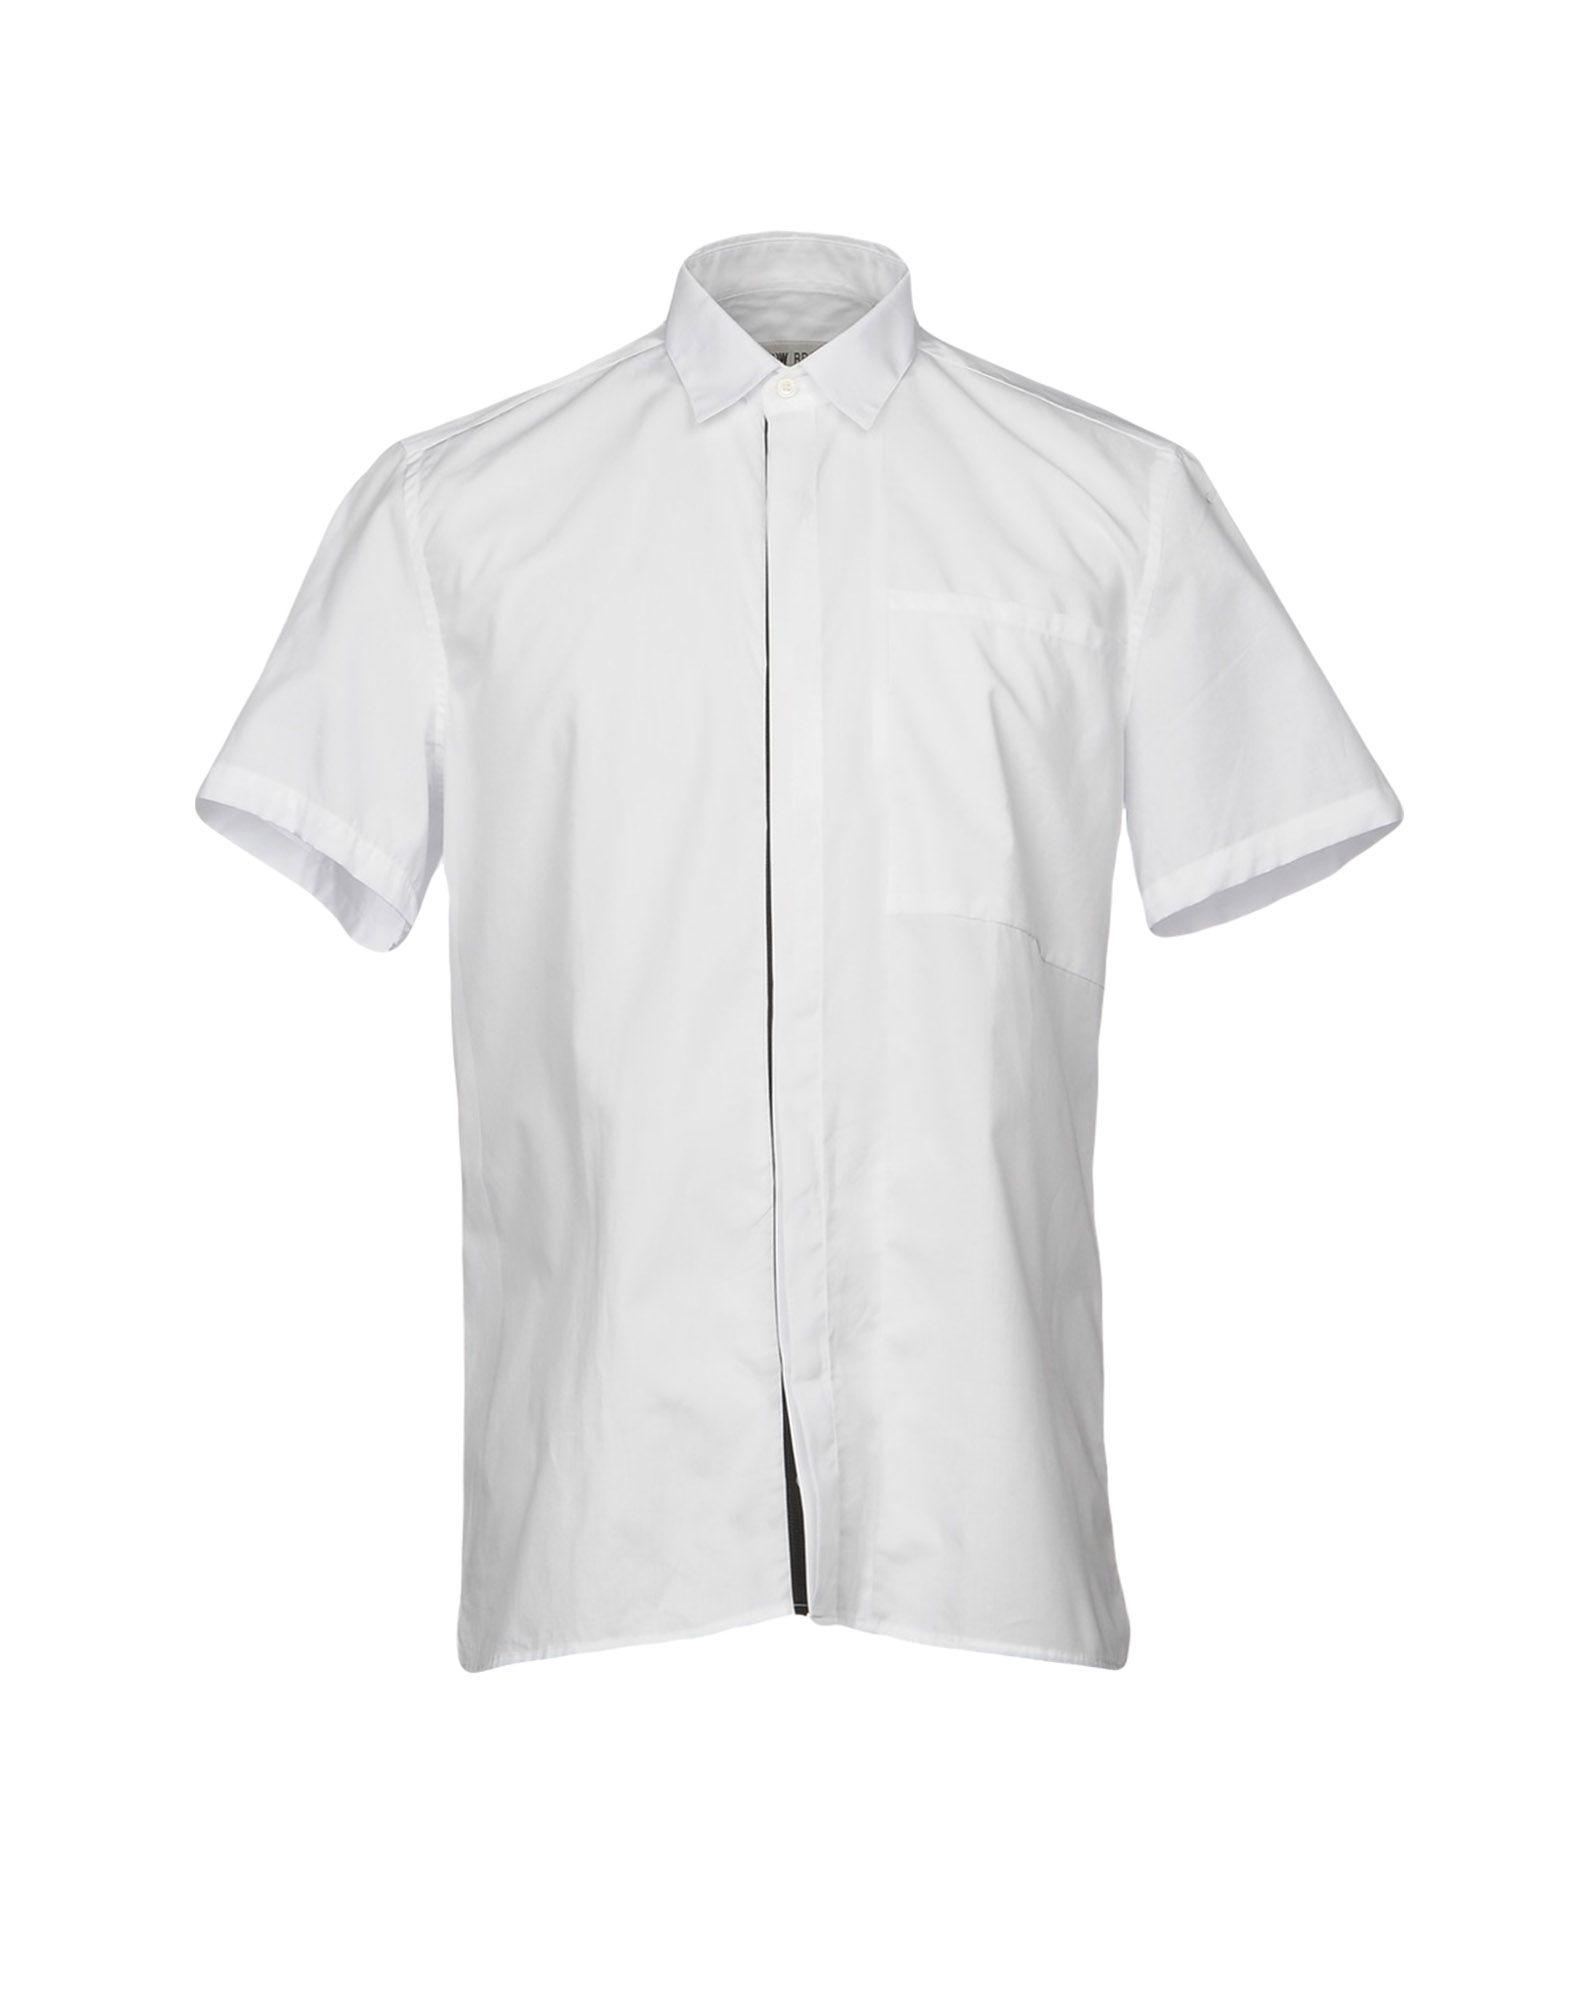 Low Brand Shirts In White